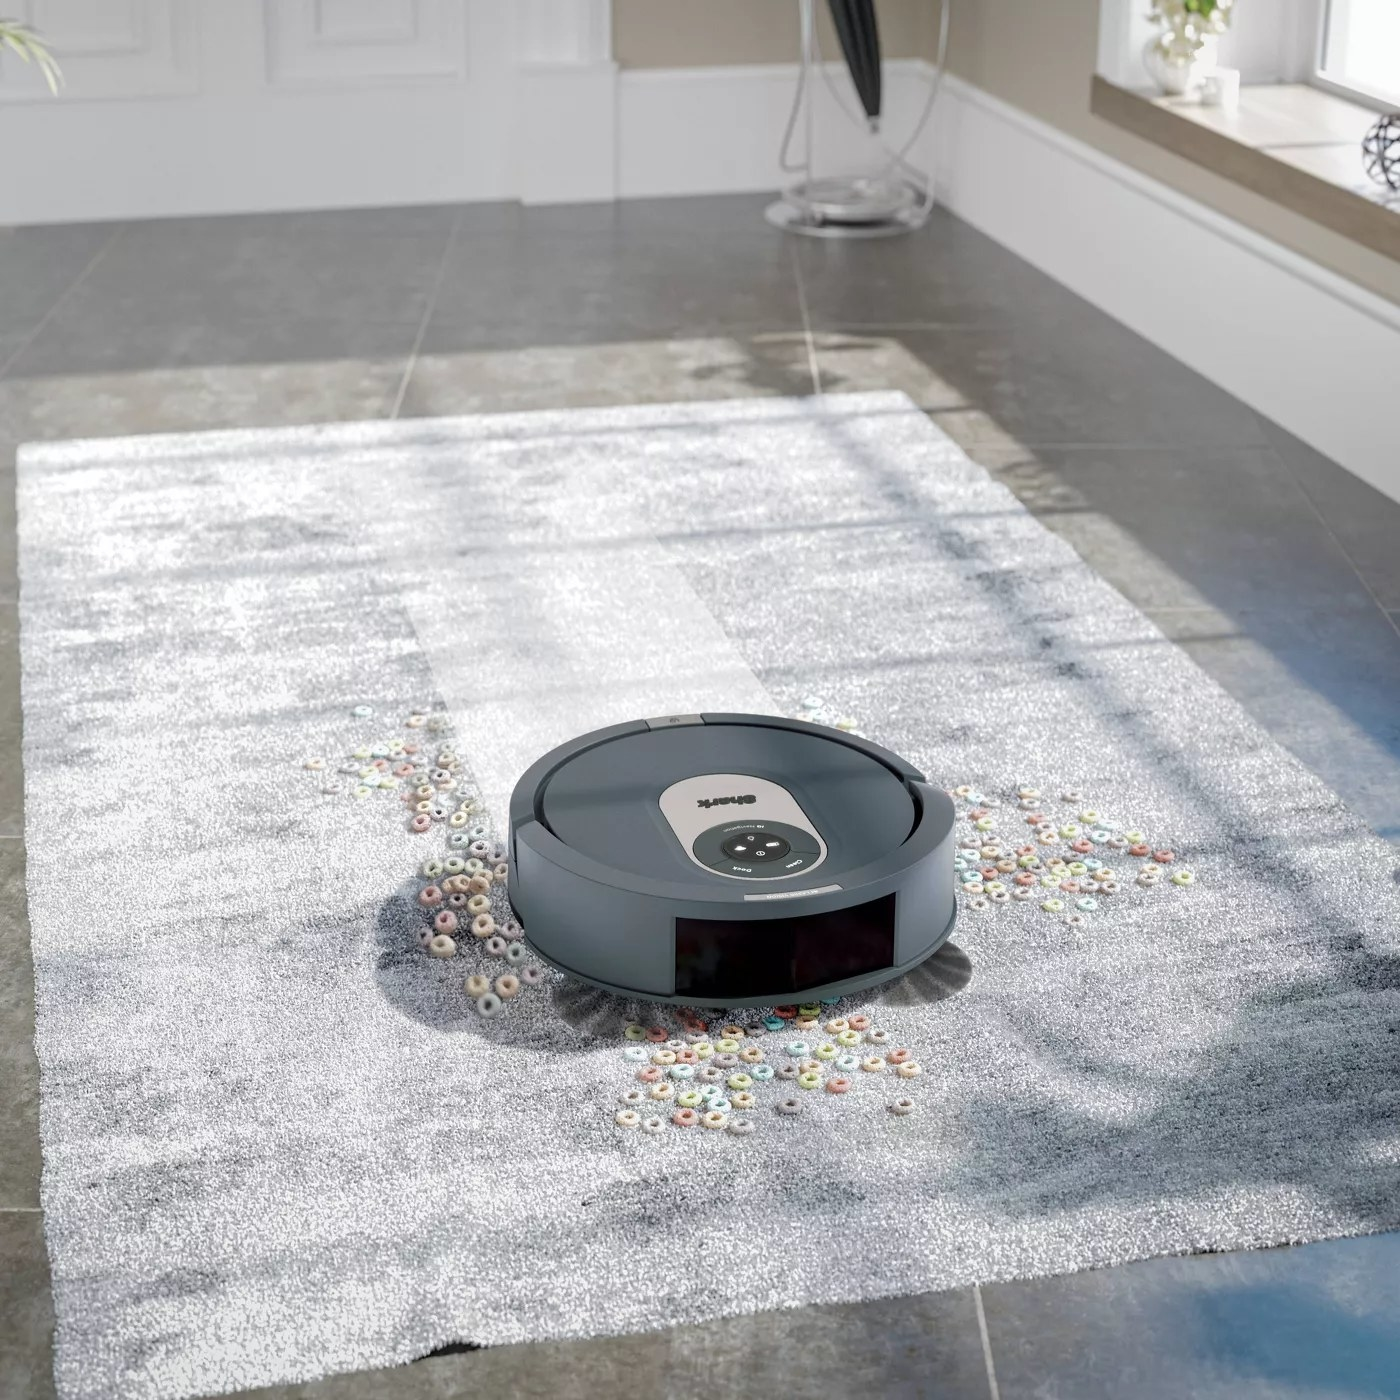 The gray robot vacuum vacuuming cereal